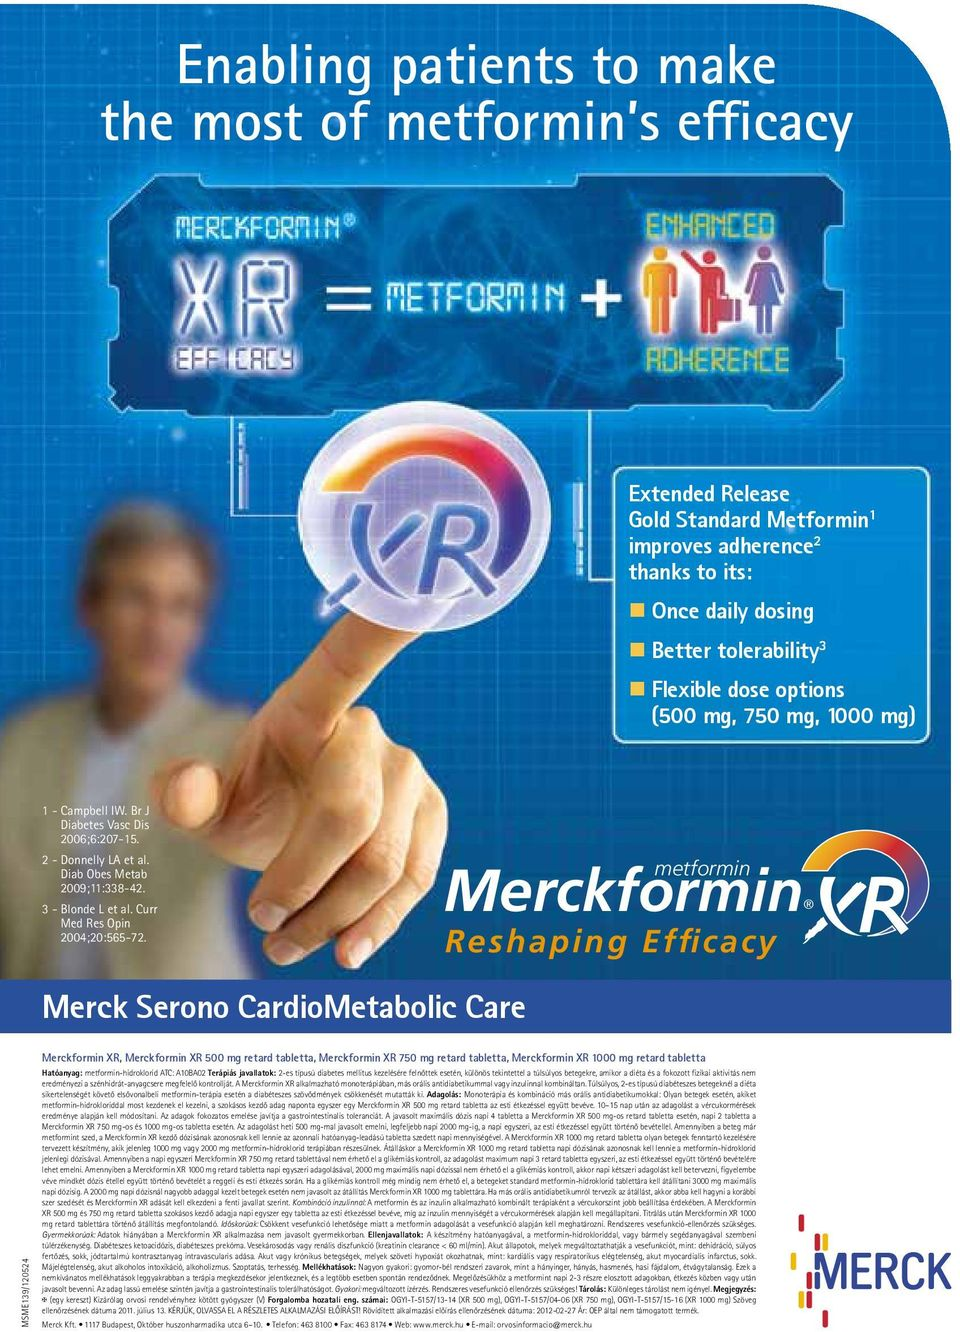 metformin Merckformin Reshaping Efficacy Merck Serono CardioMetabolic Care MSME139/120524 Merckformin XR, Merckformin XR 500 mg retard tabletta, Merckformin XR 750 mg retard tabletta, Merckformin XR